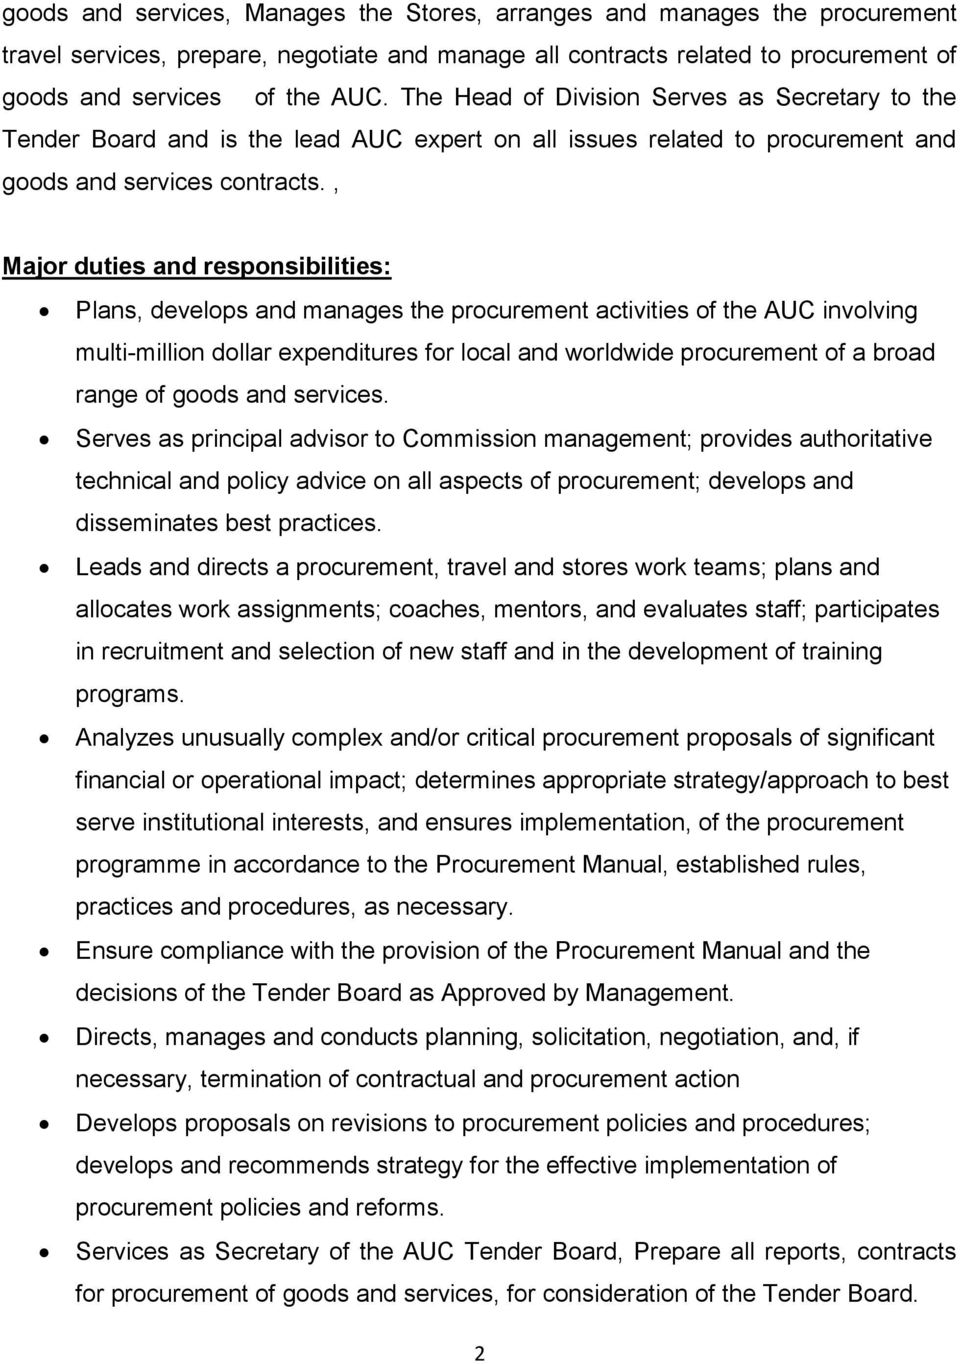 , Major duties and responsibilities: Plans, develops and manages the procurement activities of the AUC involving multi-million dollar expenditures for local and worldwide procurement of a broad range